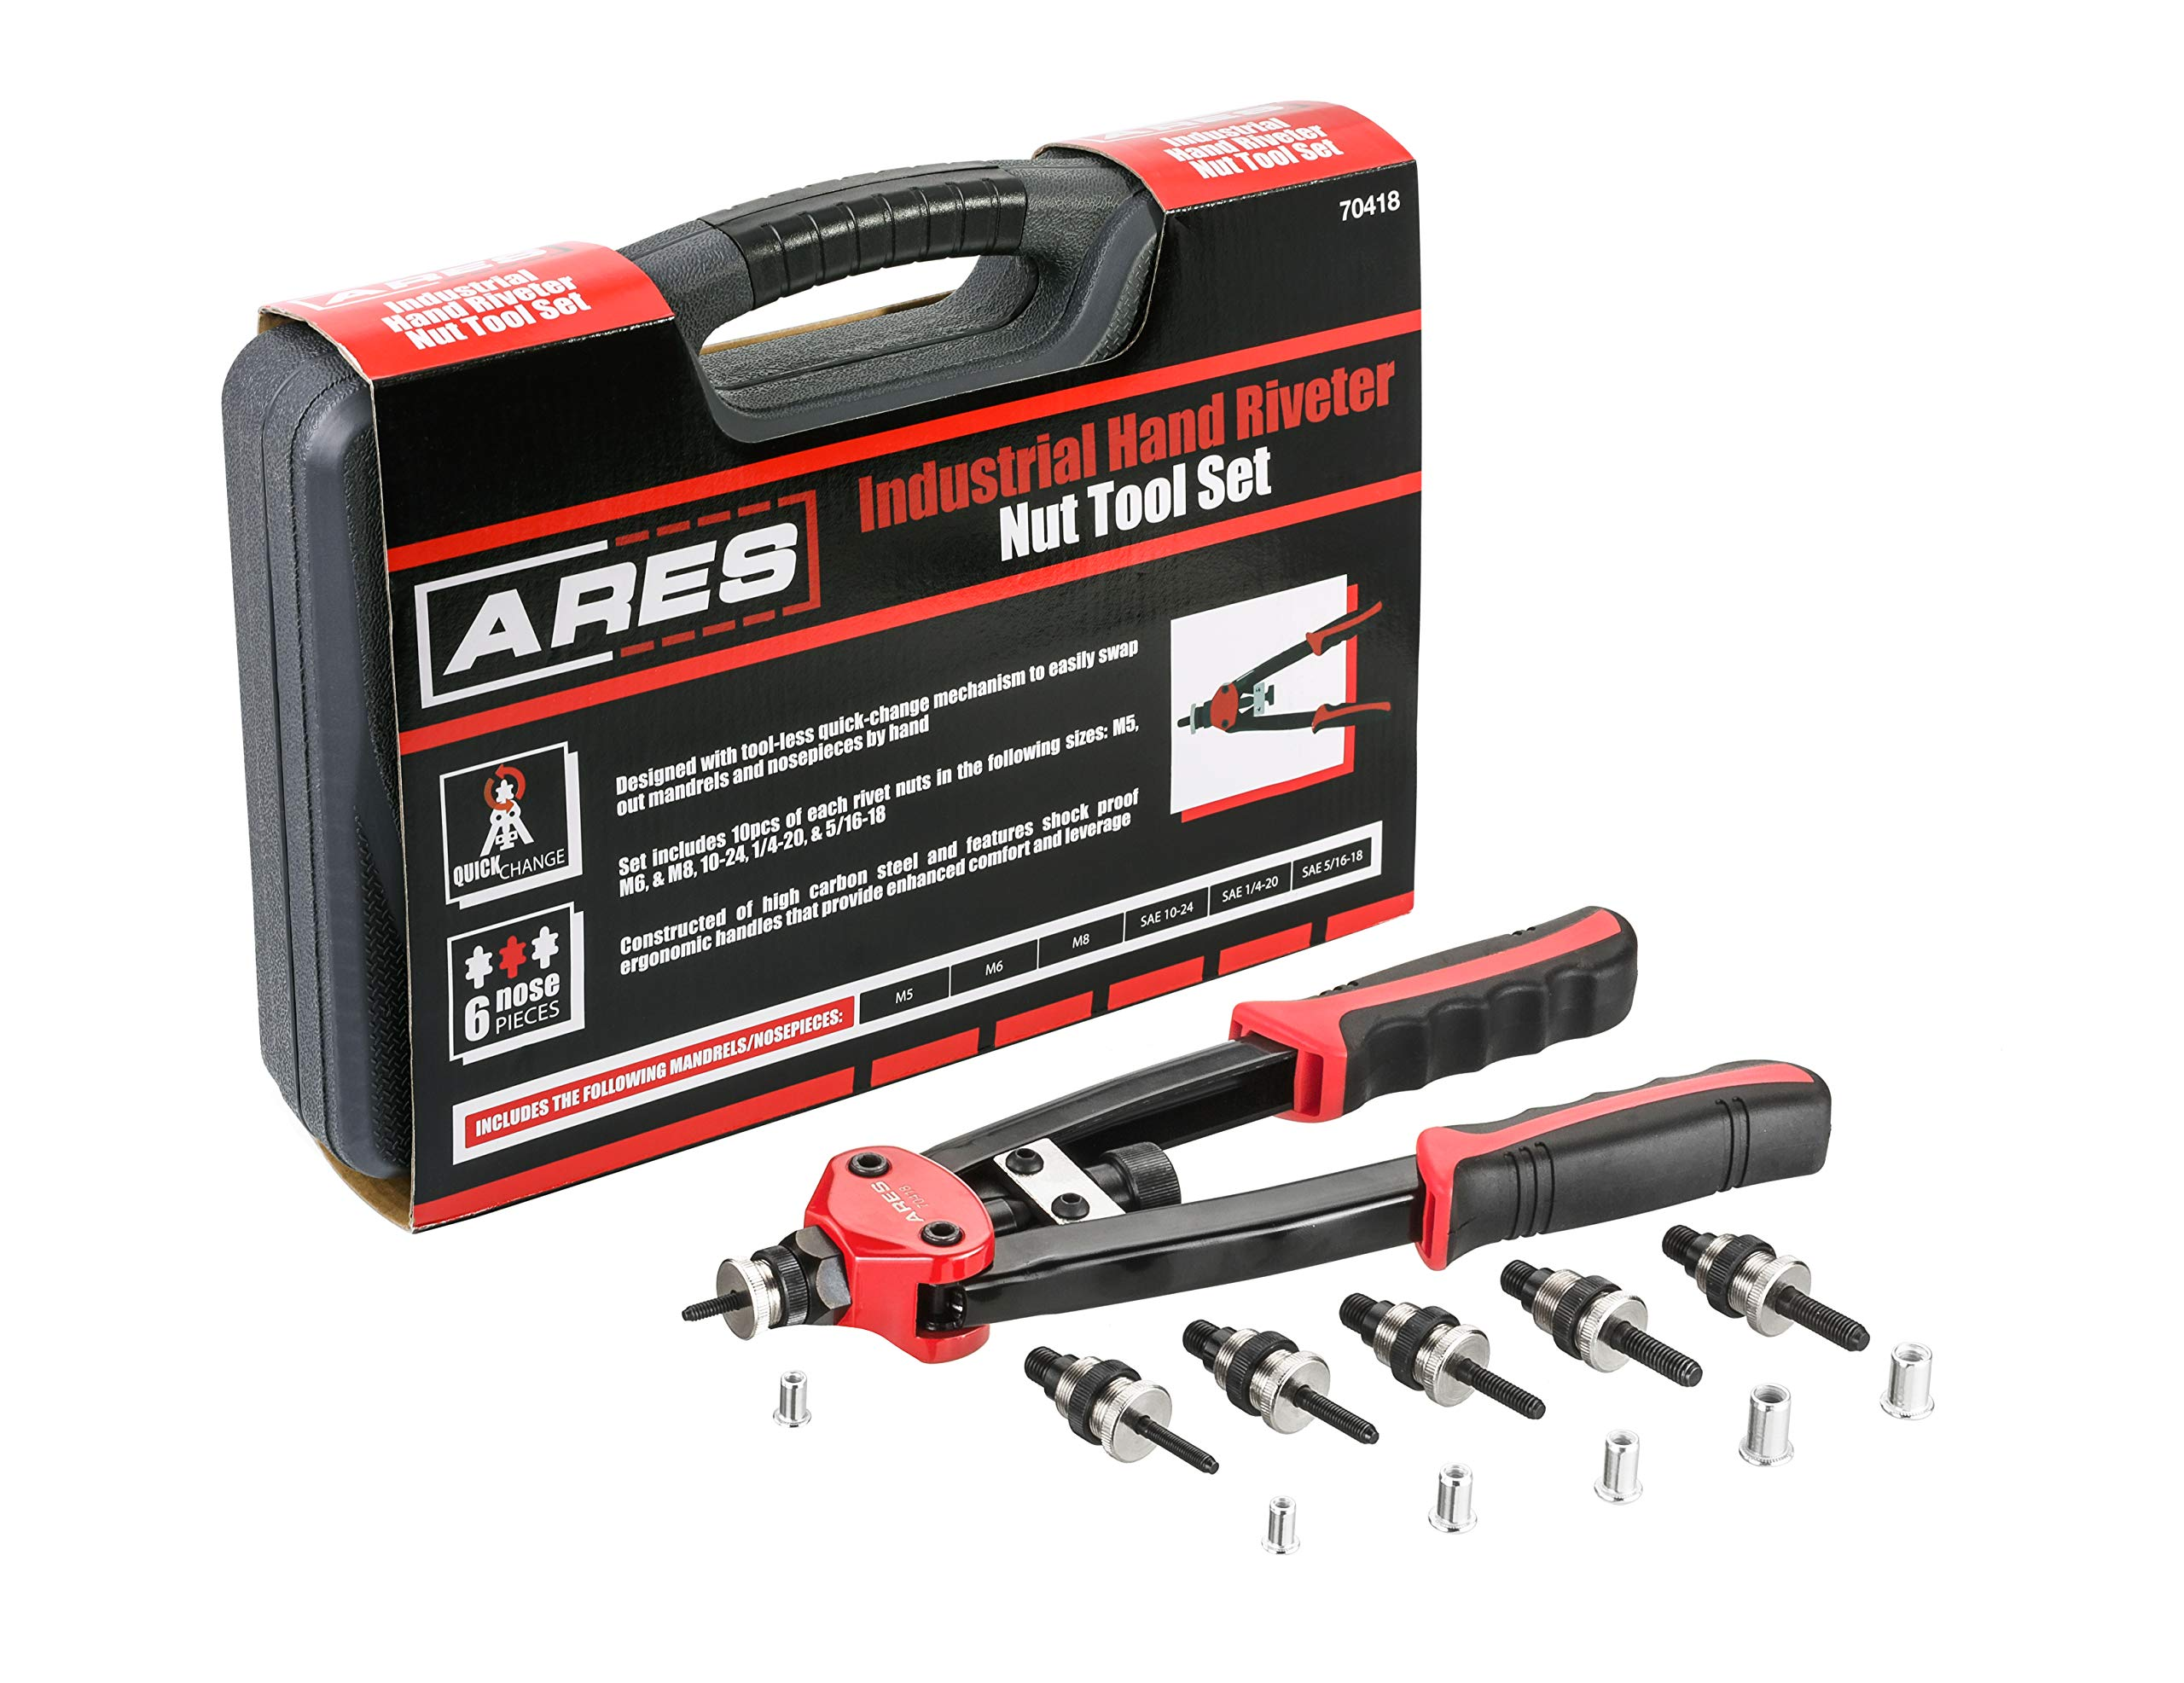 ARES 70418 | Heavy Duty Rivet Nut Setter | Includes M5, M6, M8, 10-24, 1/4-20, and 5/16-18 Mandrel Sets with Rivet Nuts | Works with Aluminum, Steel, and Stainless Steel Nuts